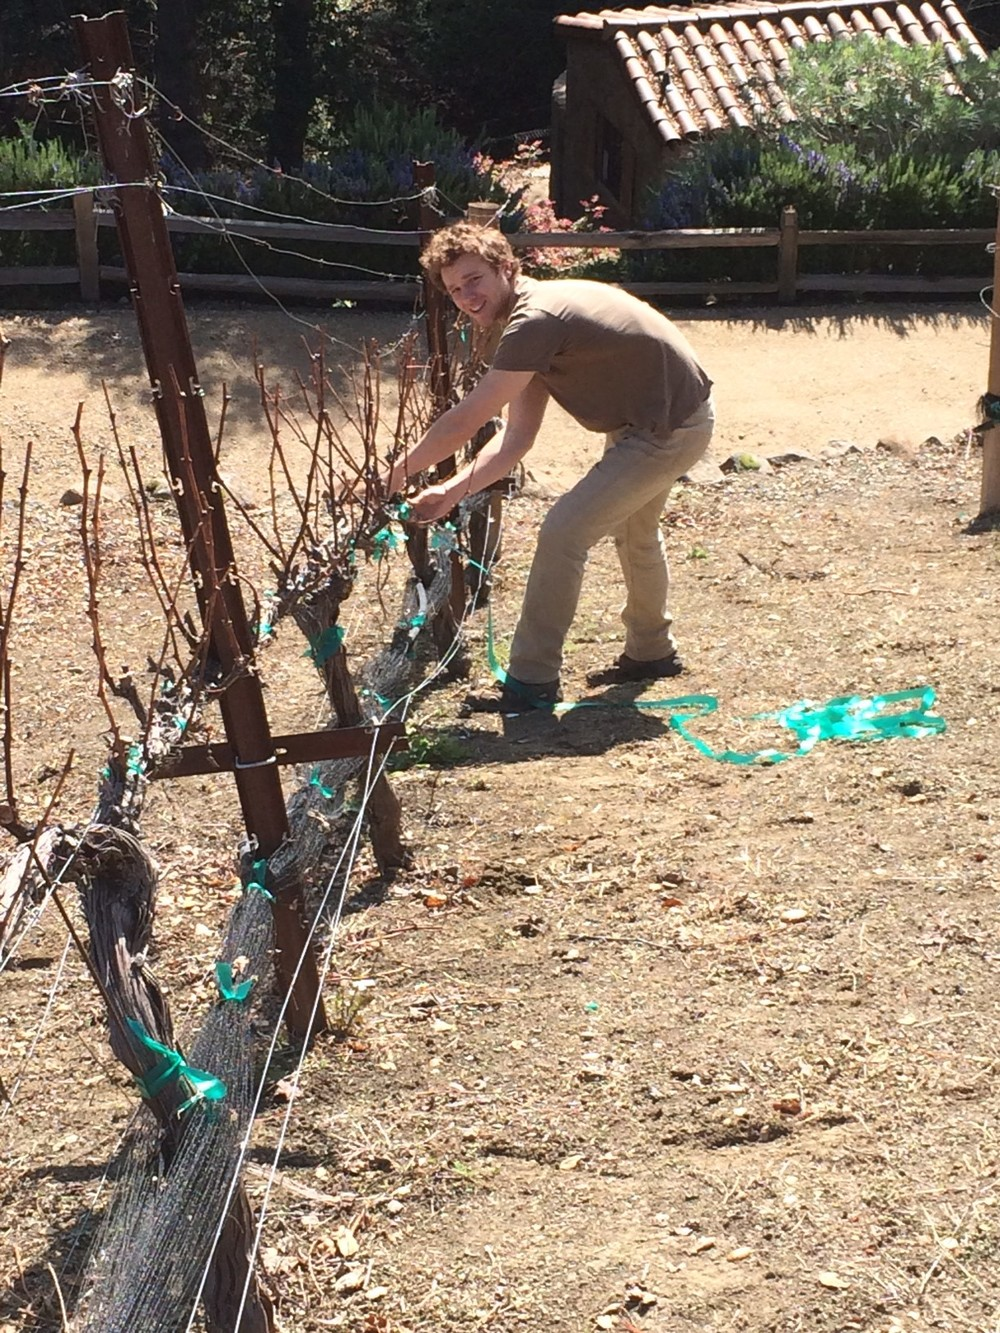 Tying the vines